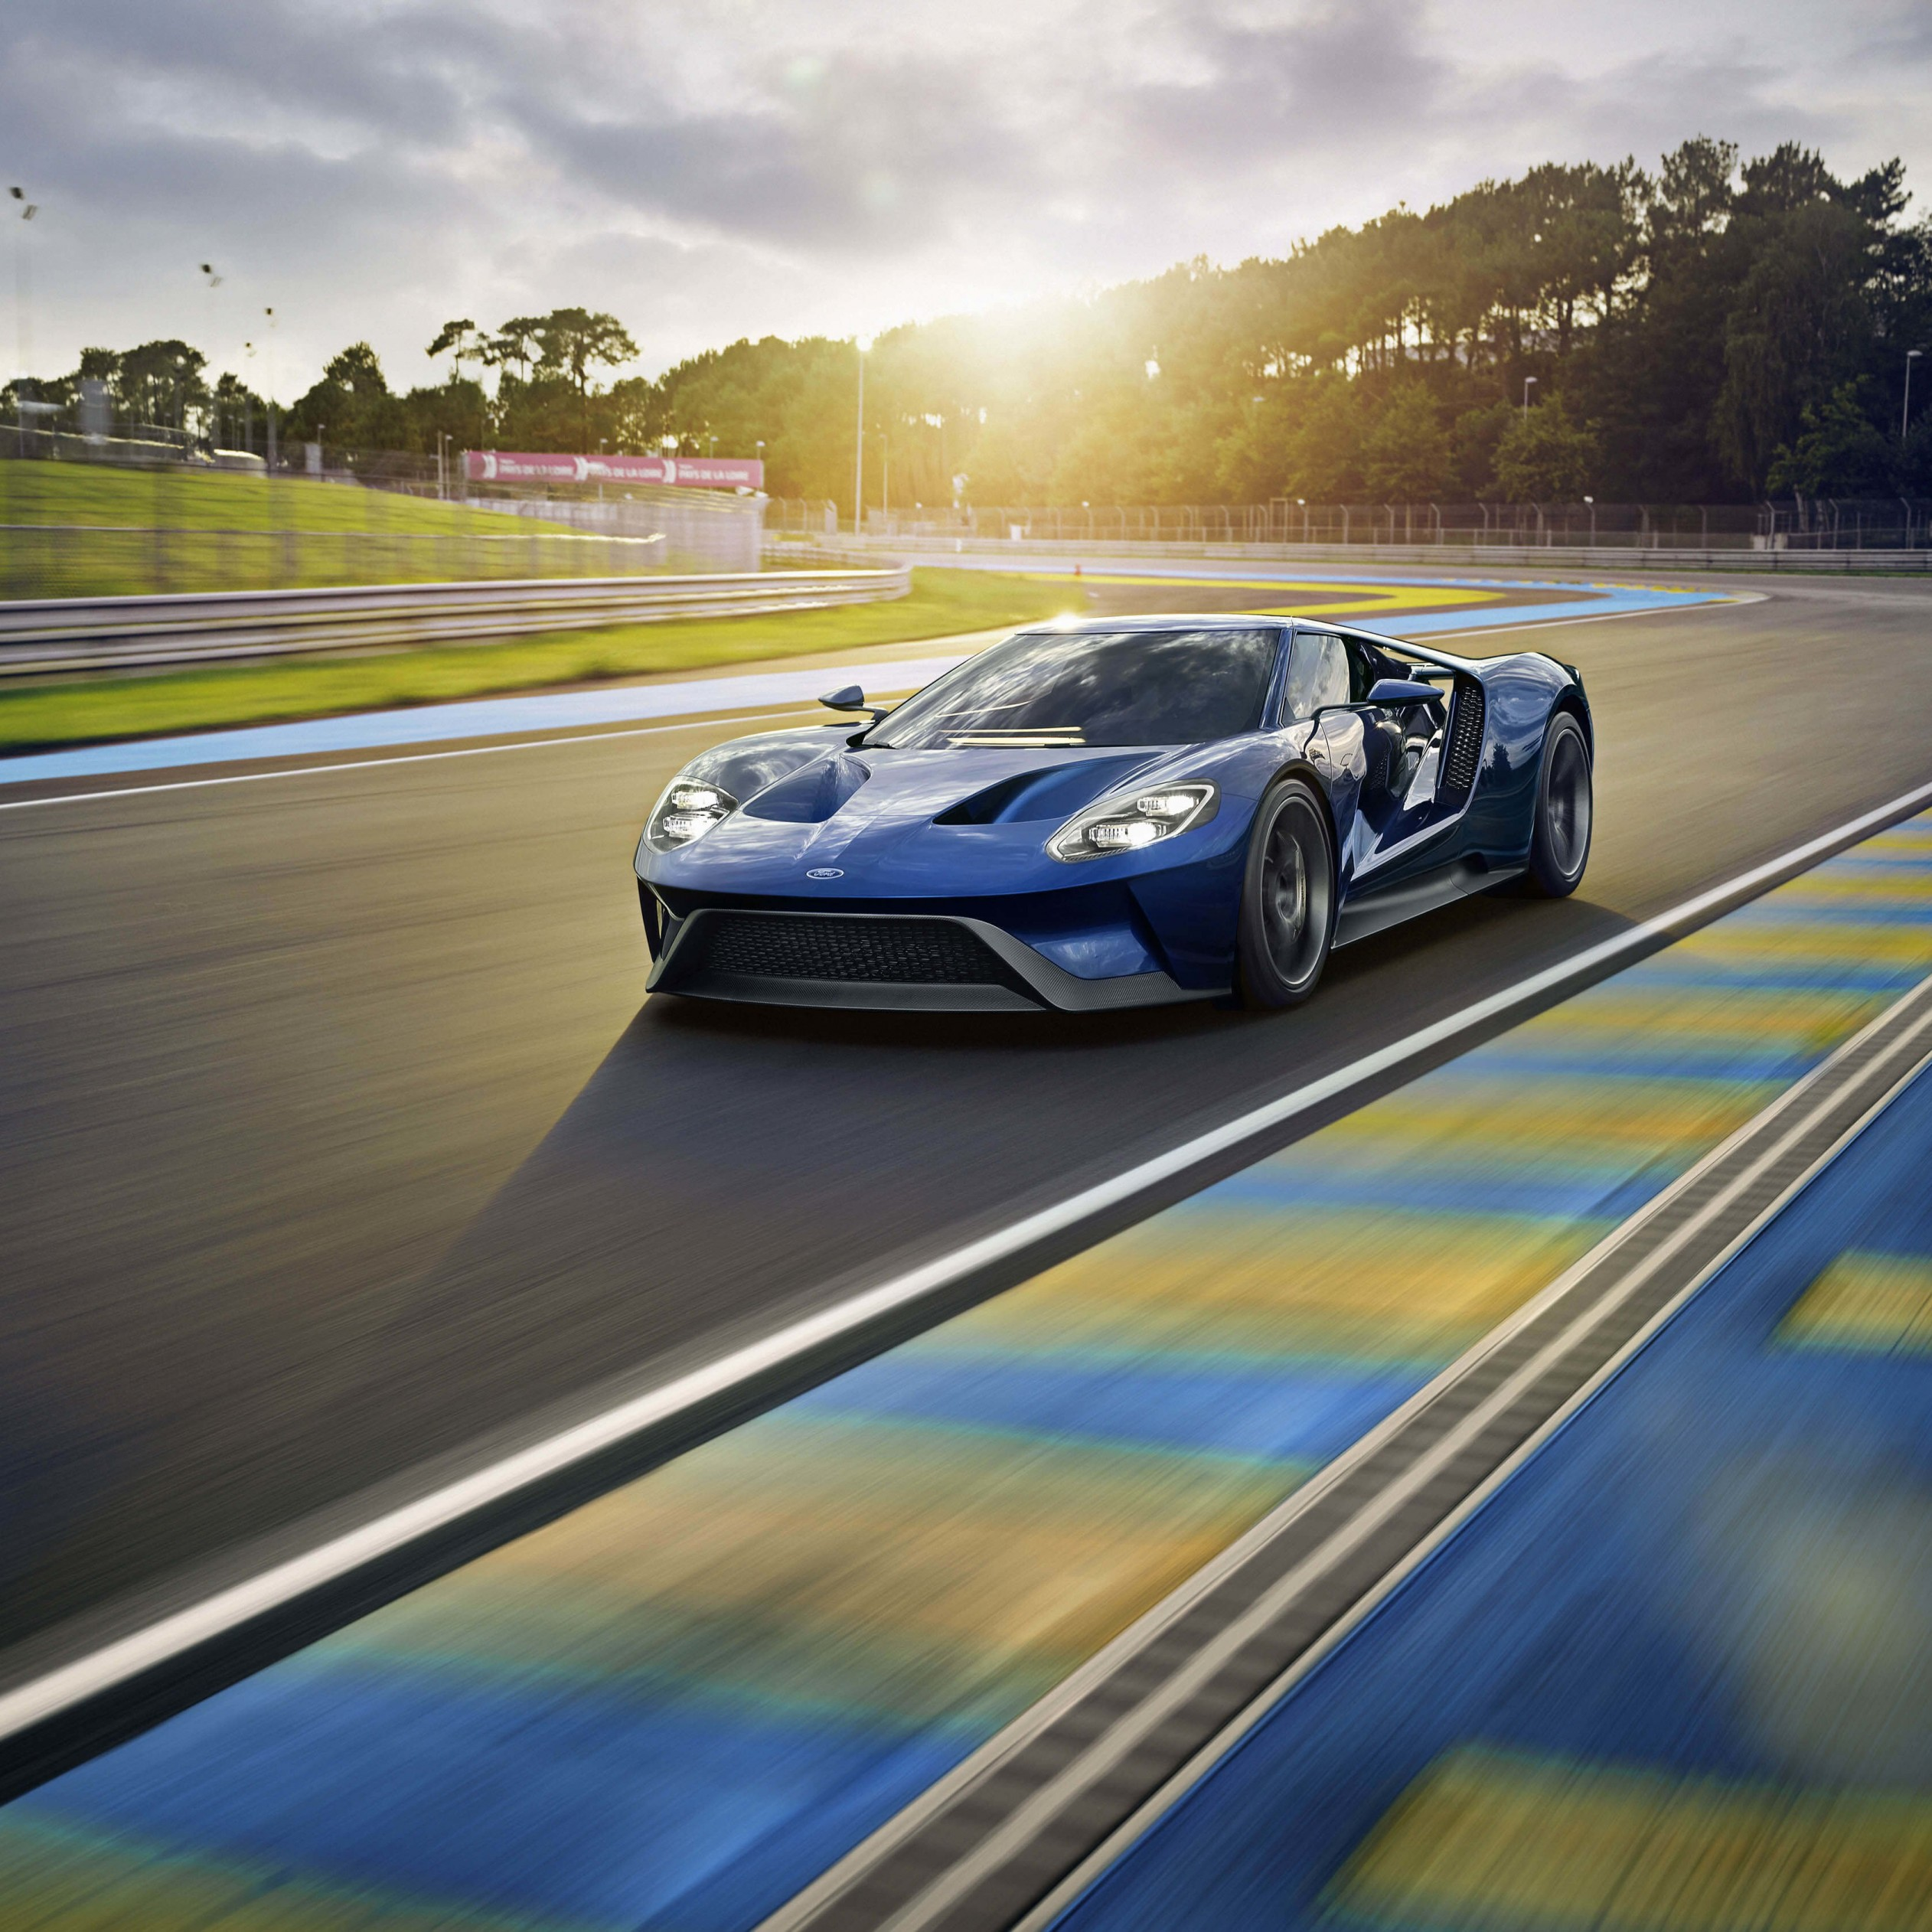 Ford GT Supercar Wallpaper for Apple iPad mini 2